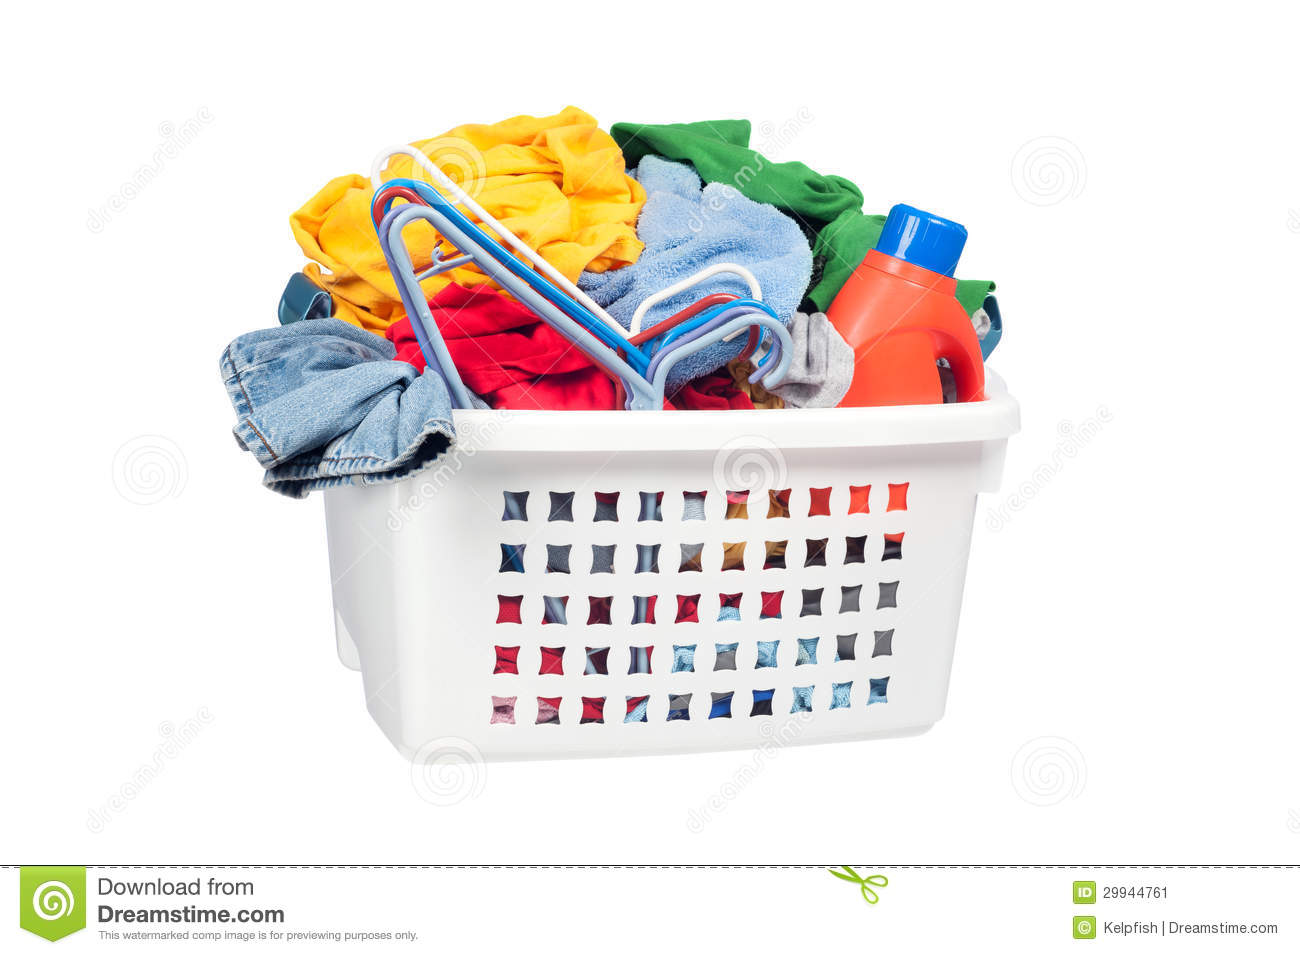 Designer Wäschekorb Laundry Basket Stock Image Image Of Shirts Cleaner 29944761